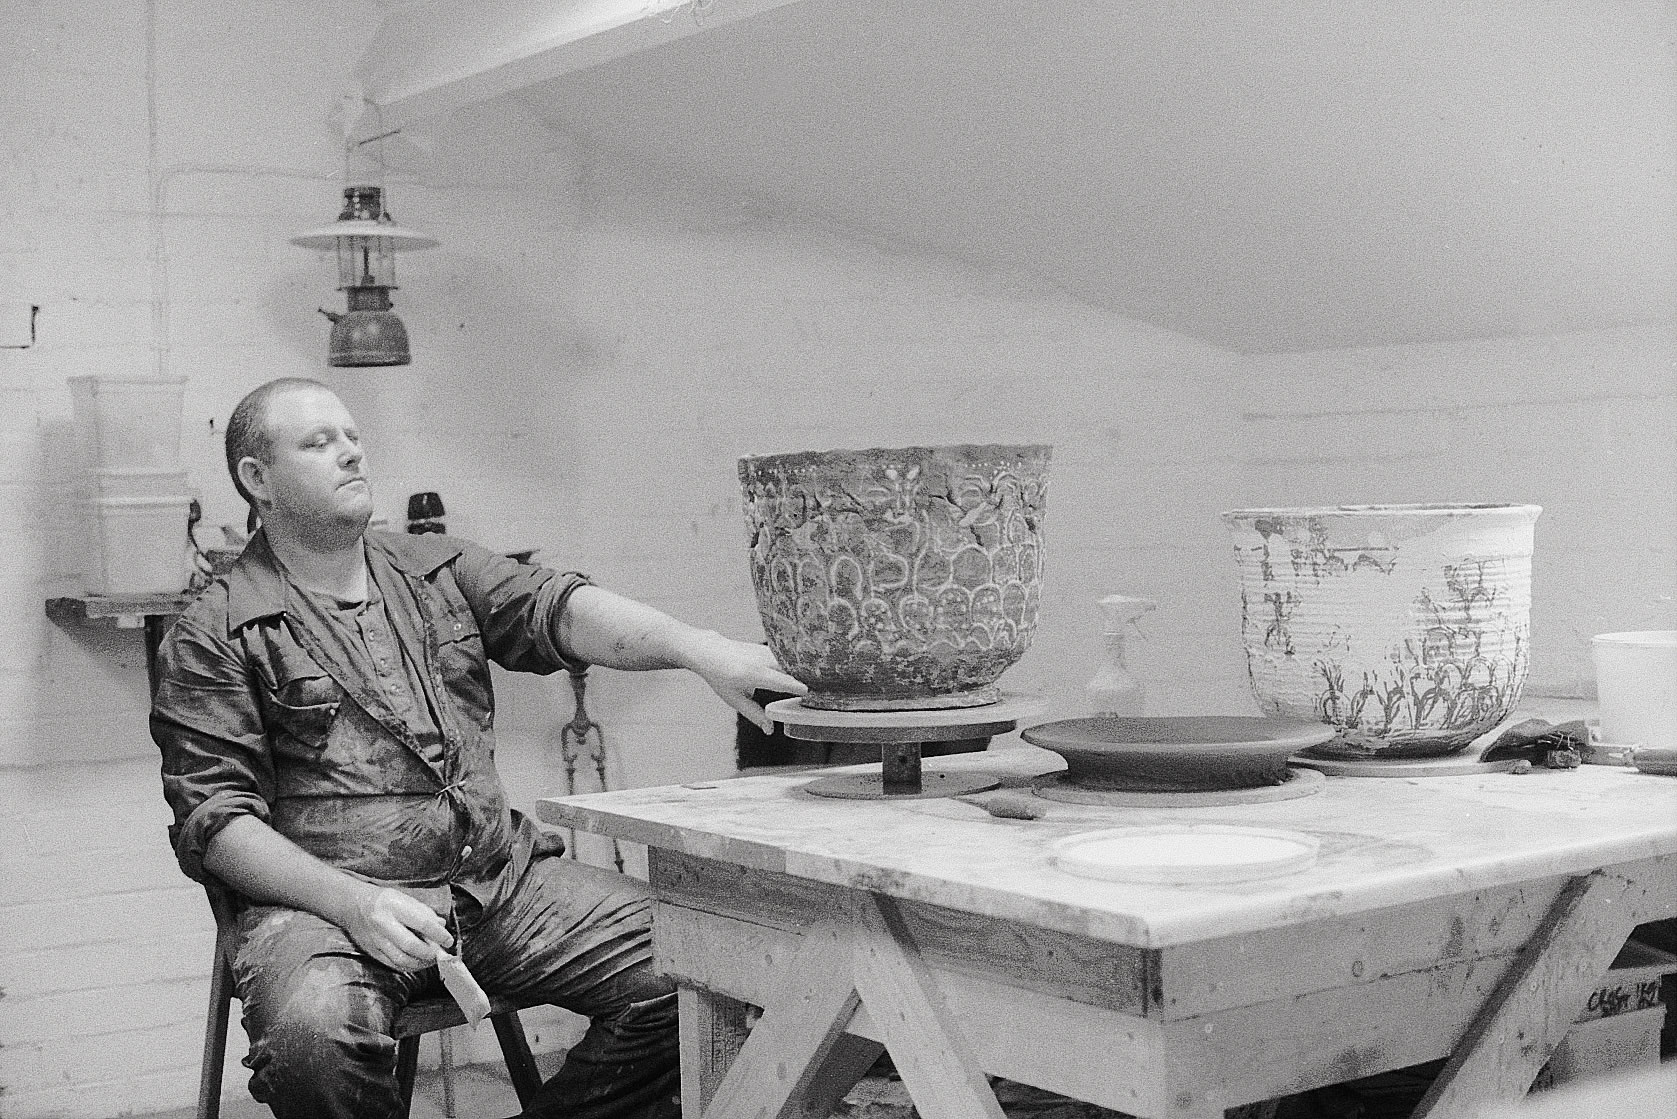 large man with ceramics